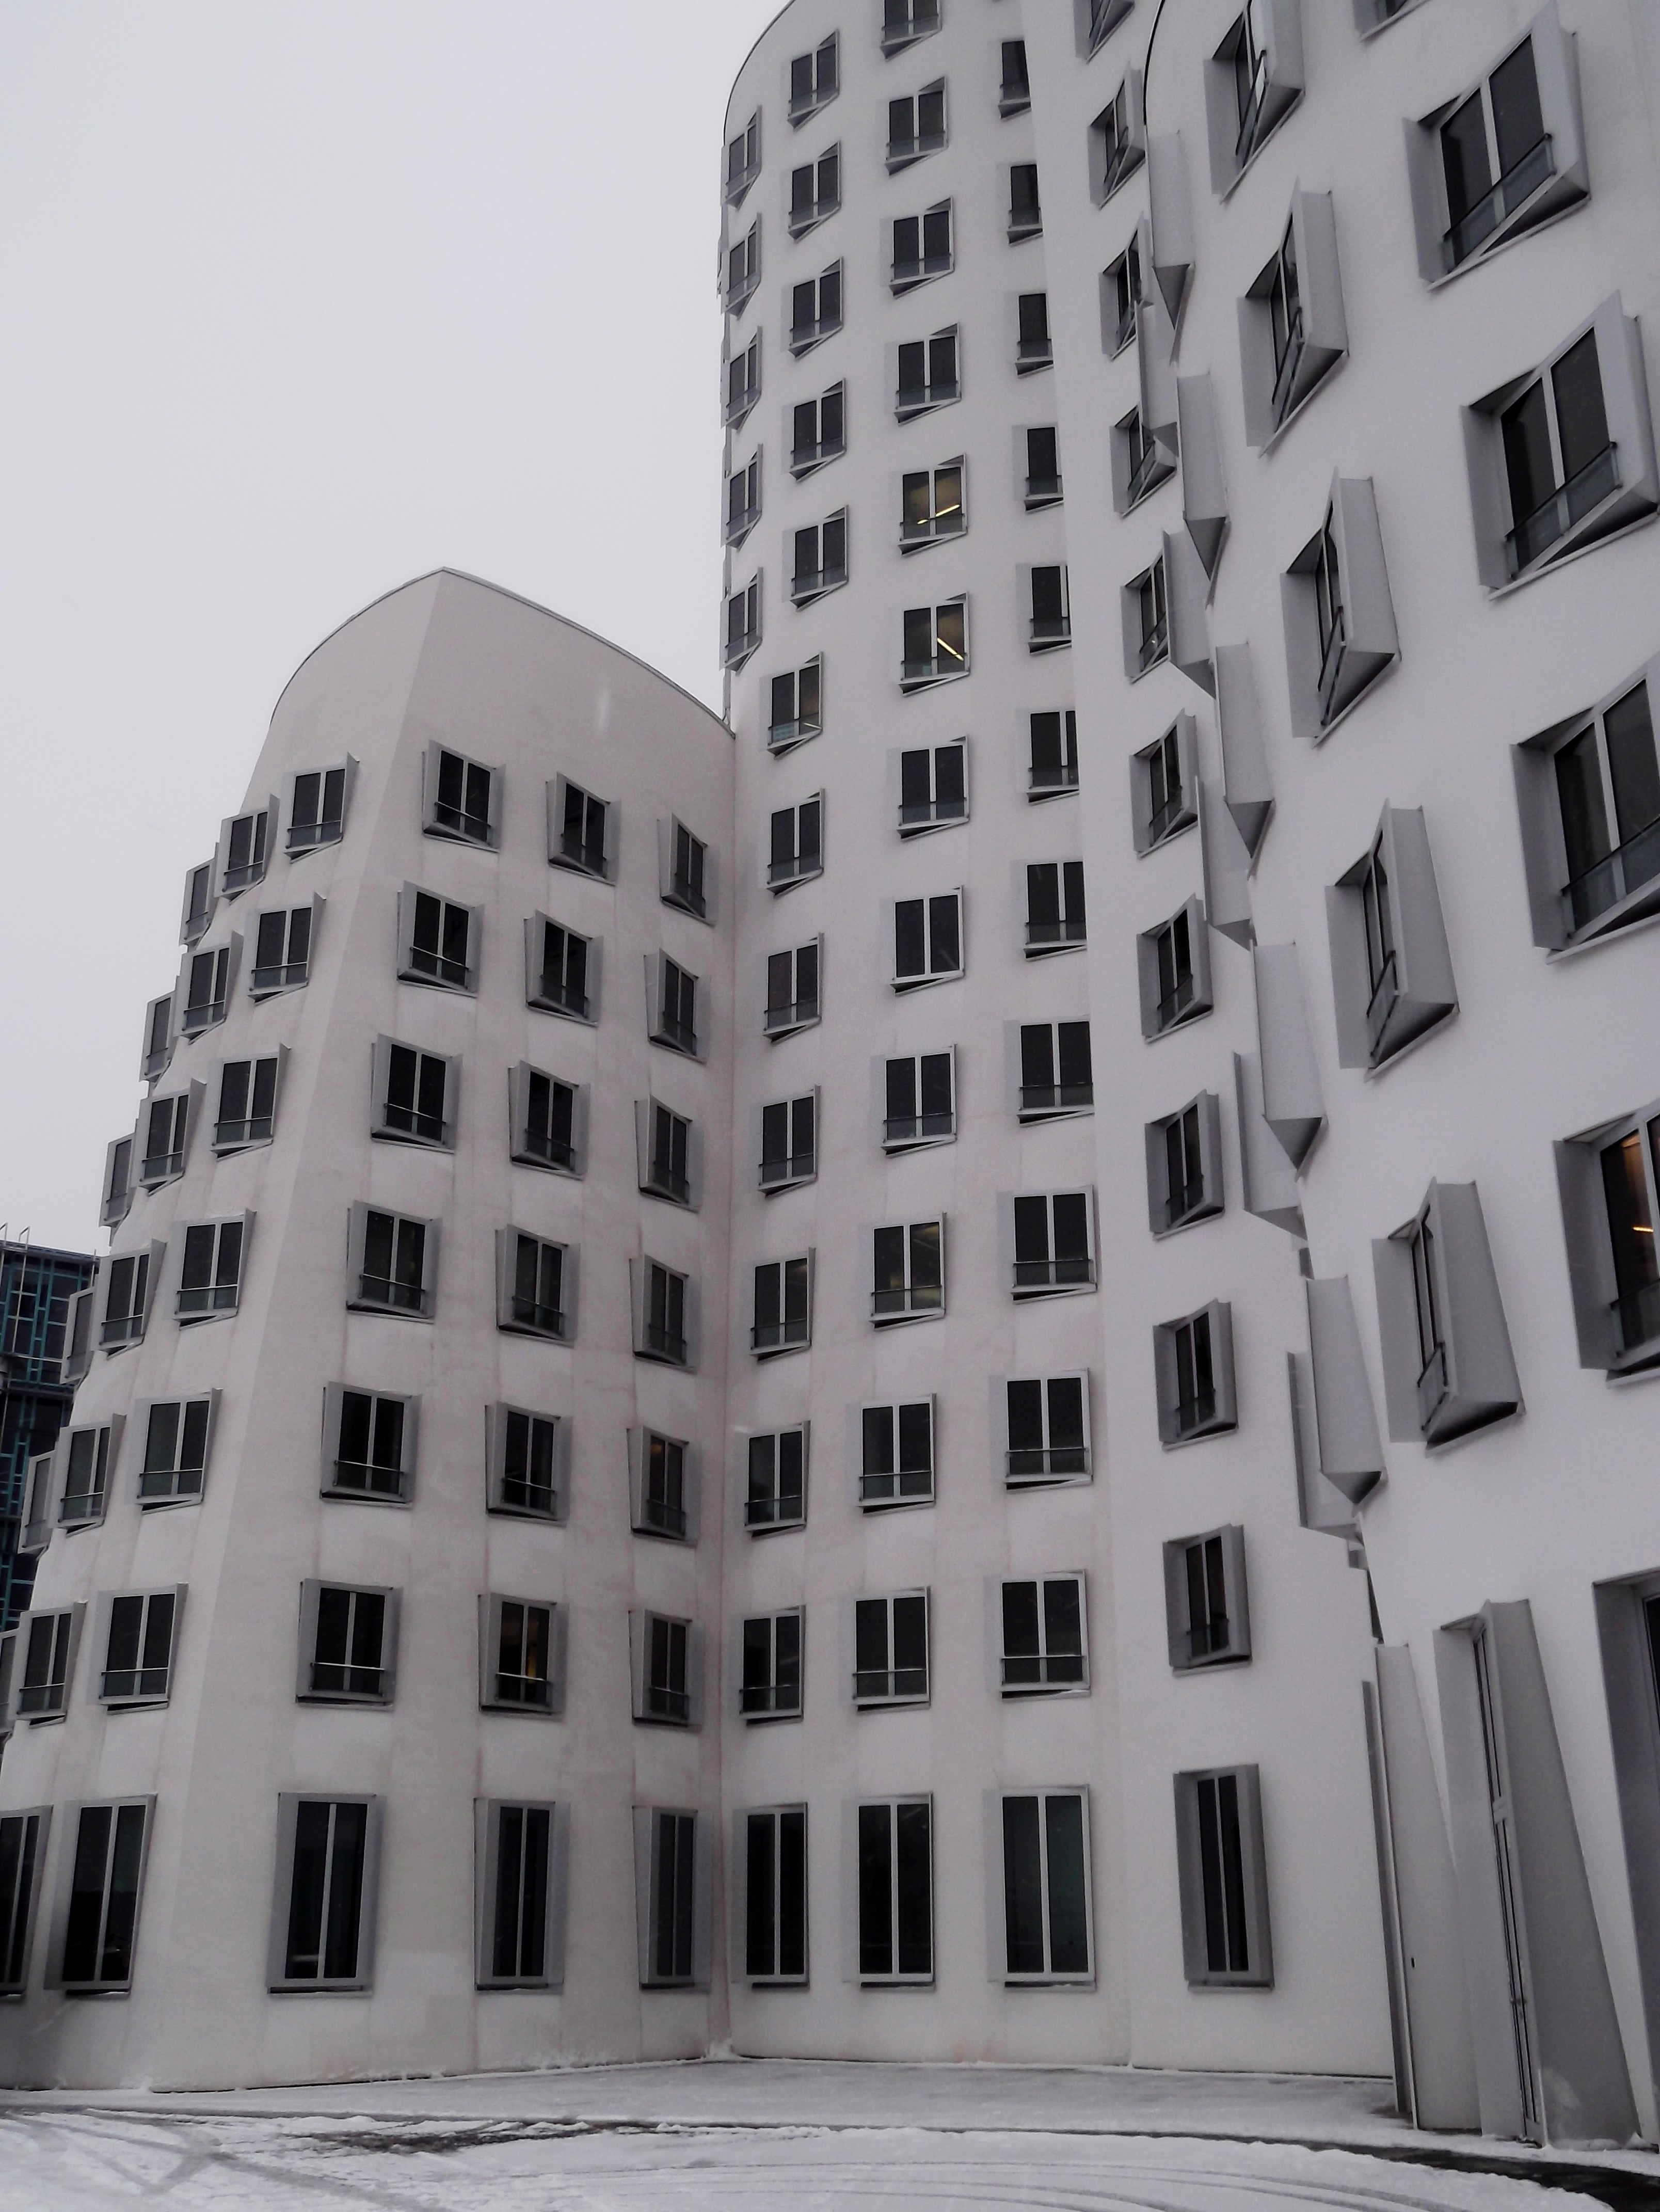 Frank O Gehry Architecture in Dsseldorf Germany